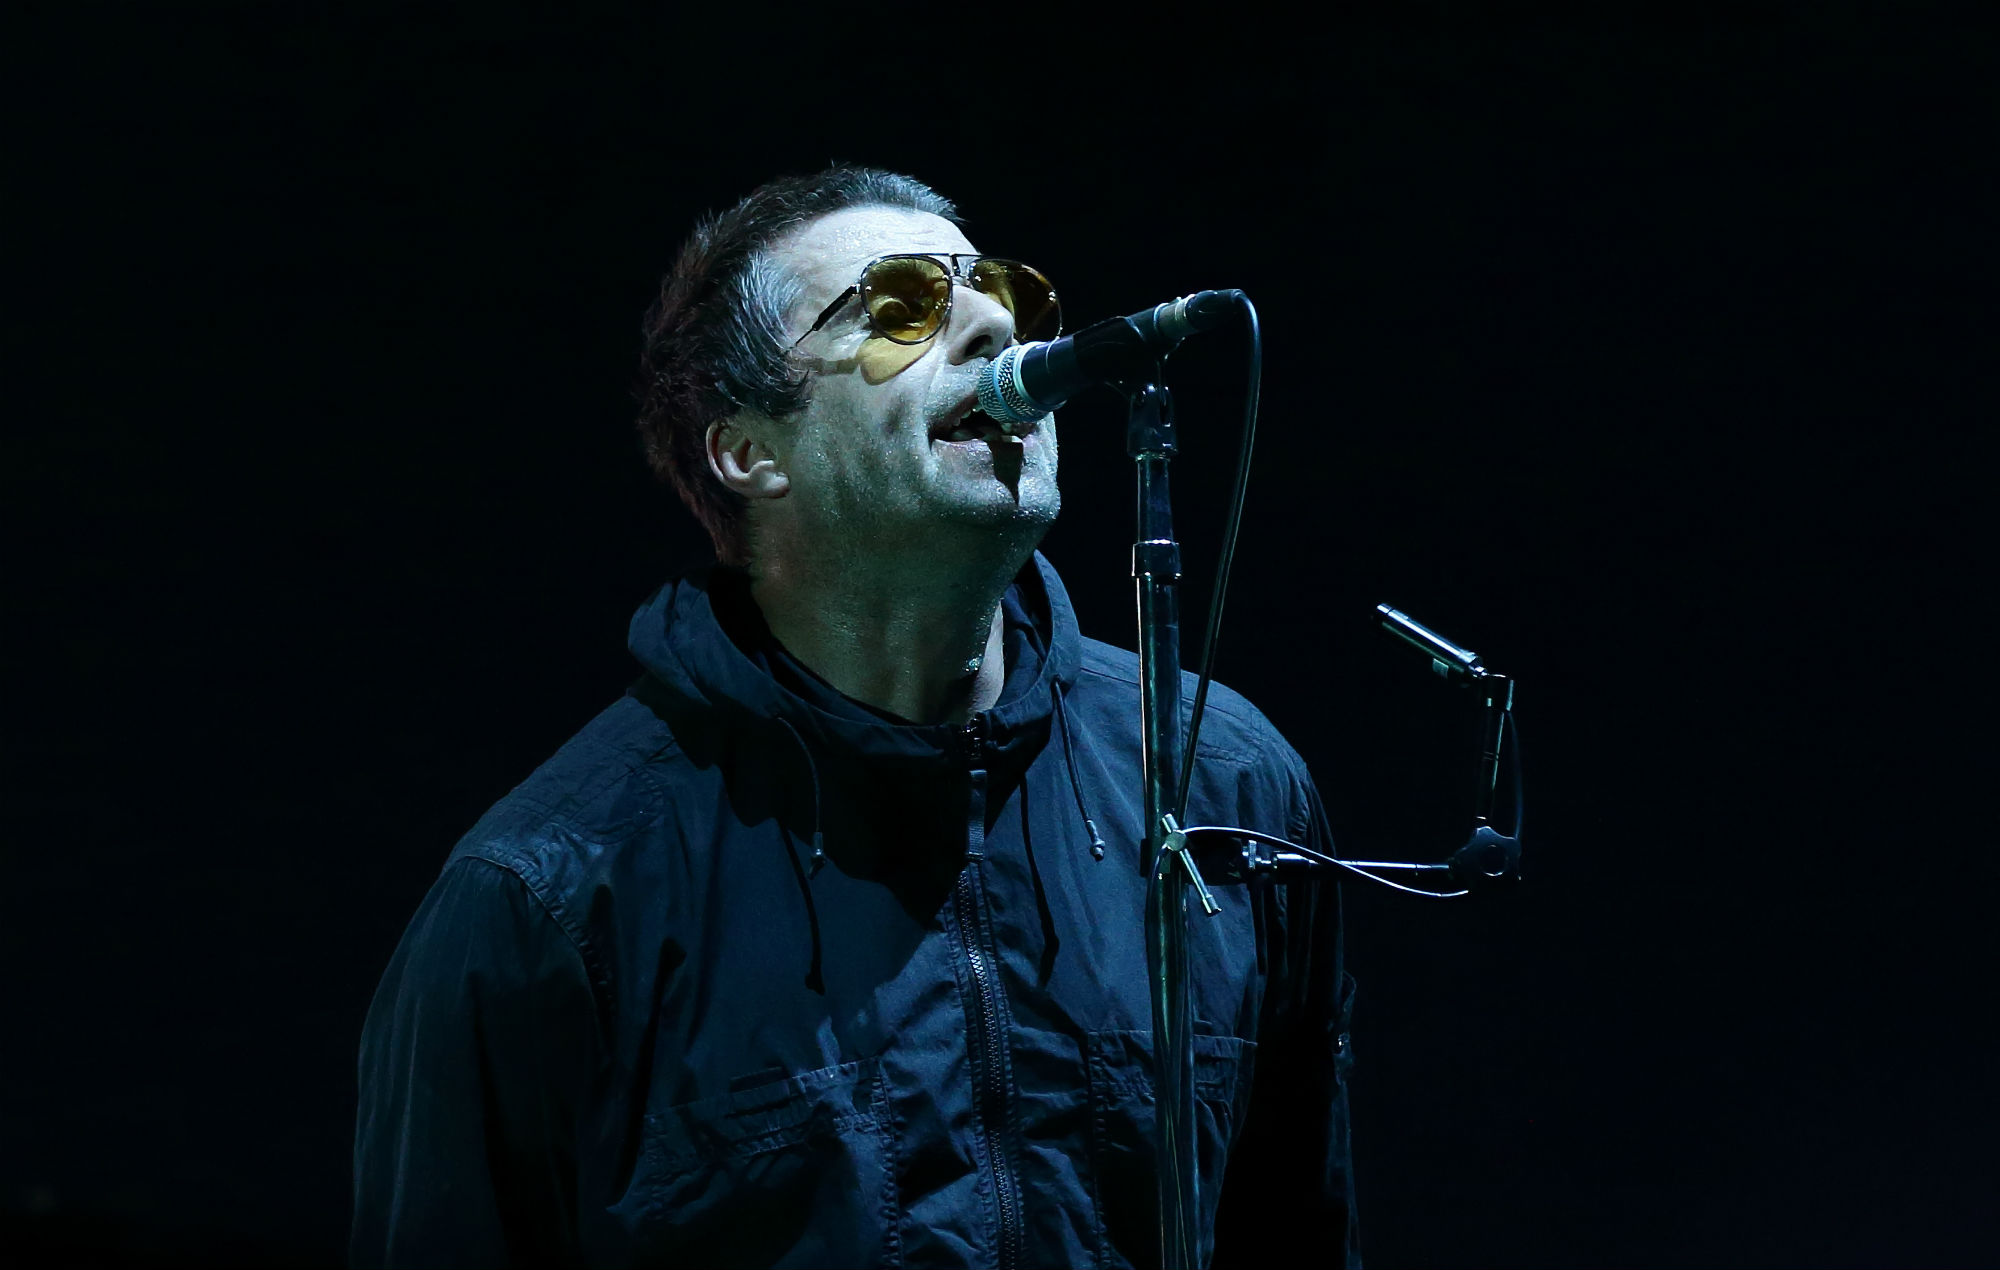 Liam Gallagher Announces The Release Date Of His New Album